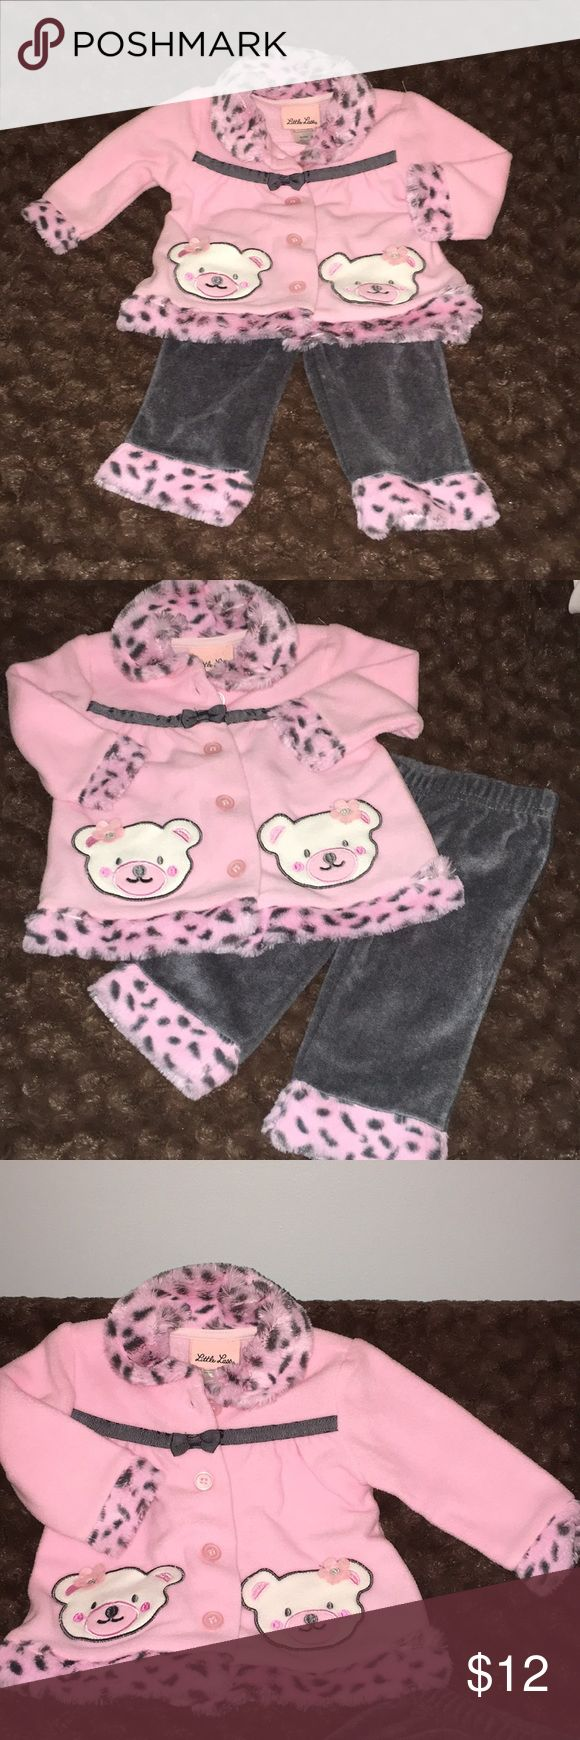 Adorable & Cozy Baby Outfit Pink button up and matching gray pants with leopard print faux fur trim on both. The little bears on top are pockets. Super cute 😊 Size 6-9 mo Little Lass Matching Sets